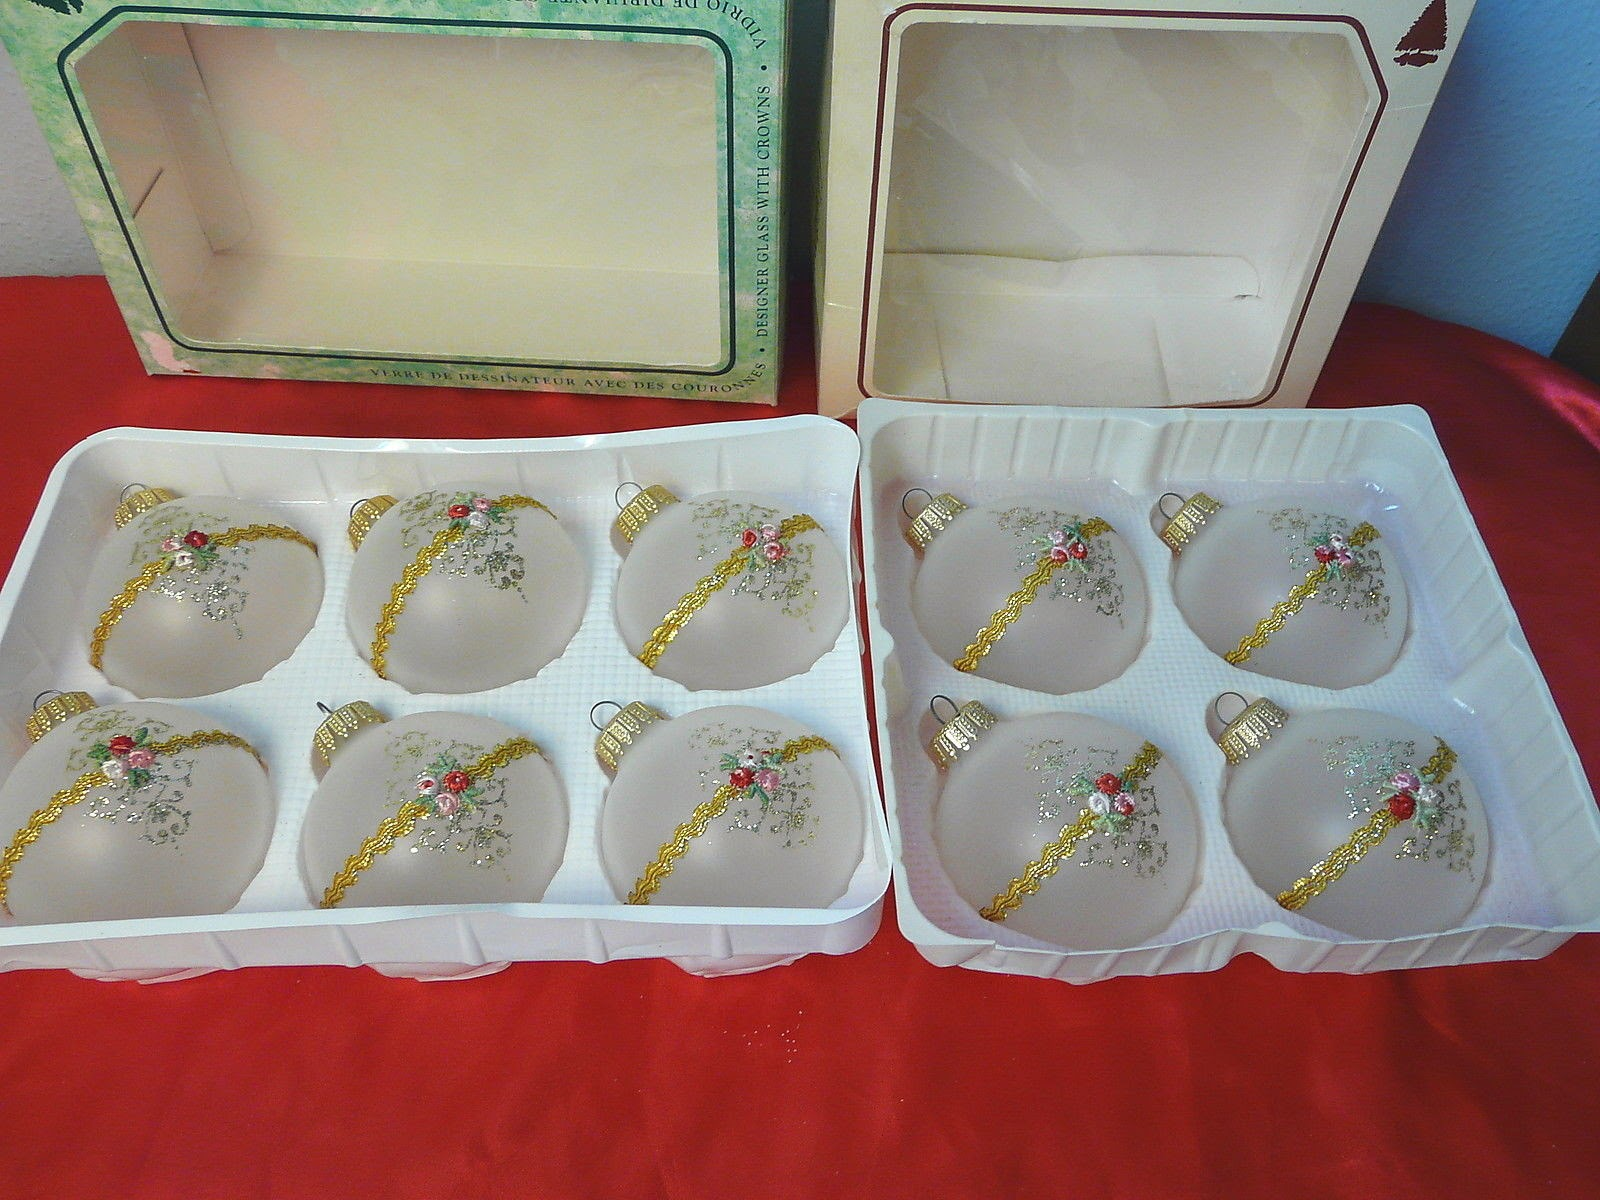 Vintage 1980's Glittered Ribbon Frosted Glass Ornaments Christmas by Krebs